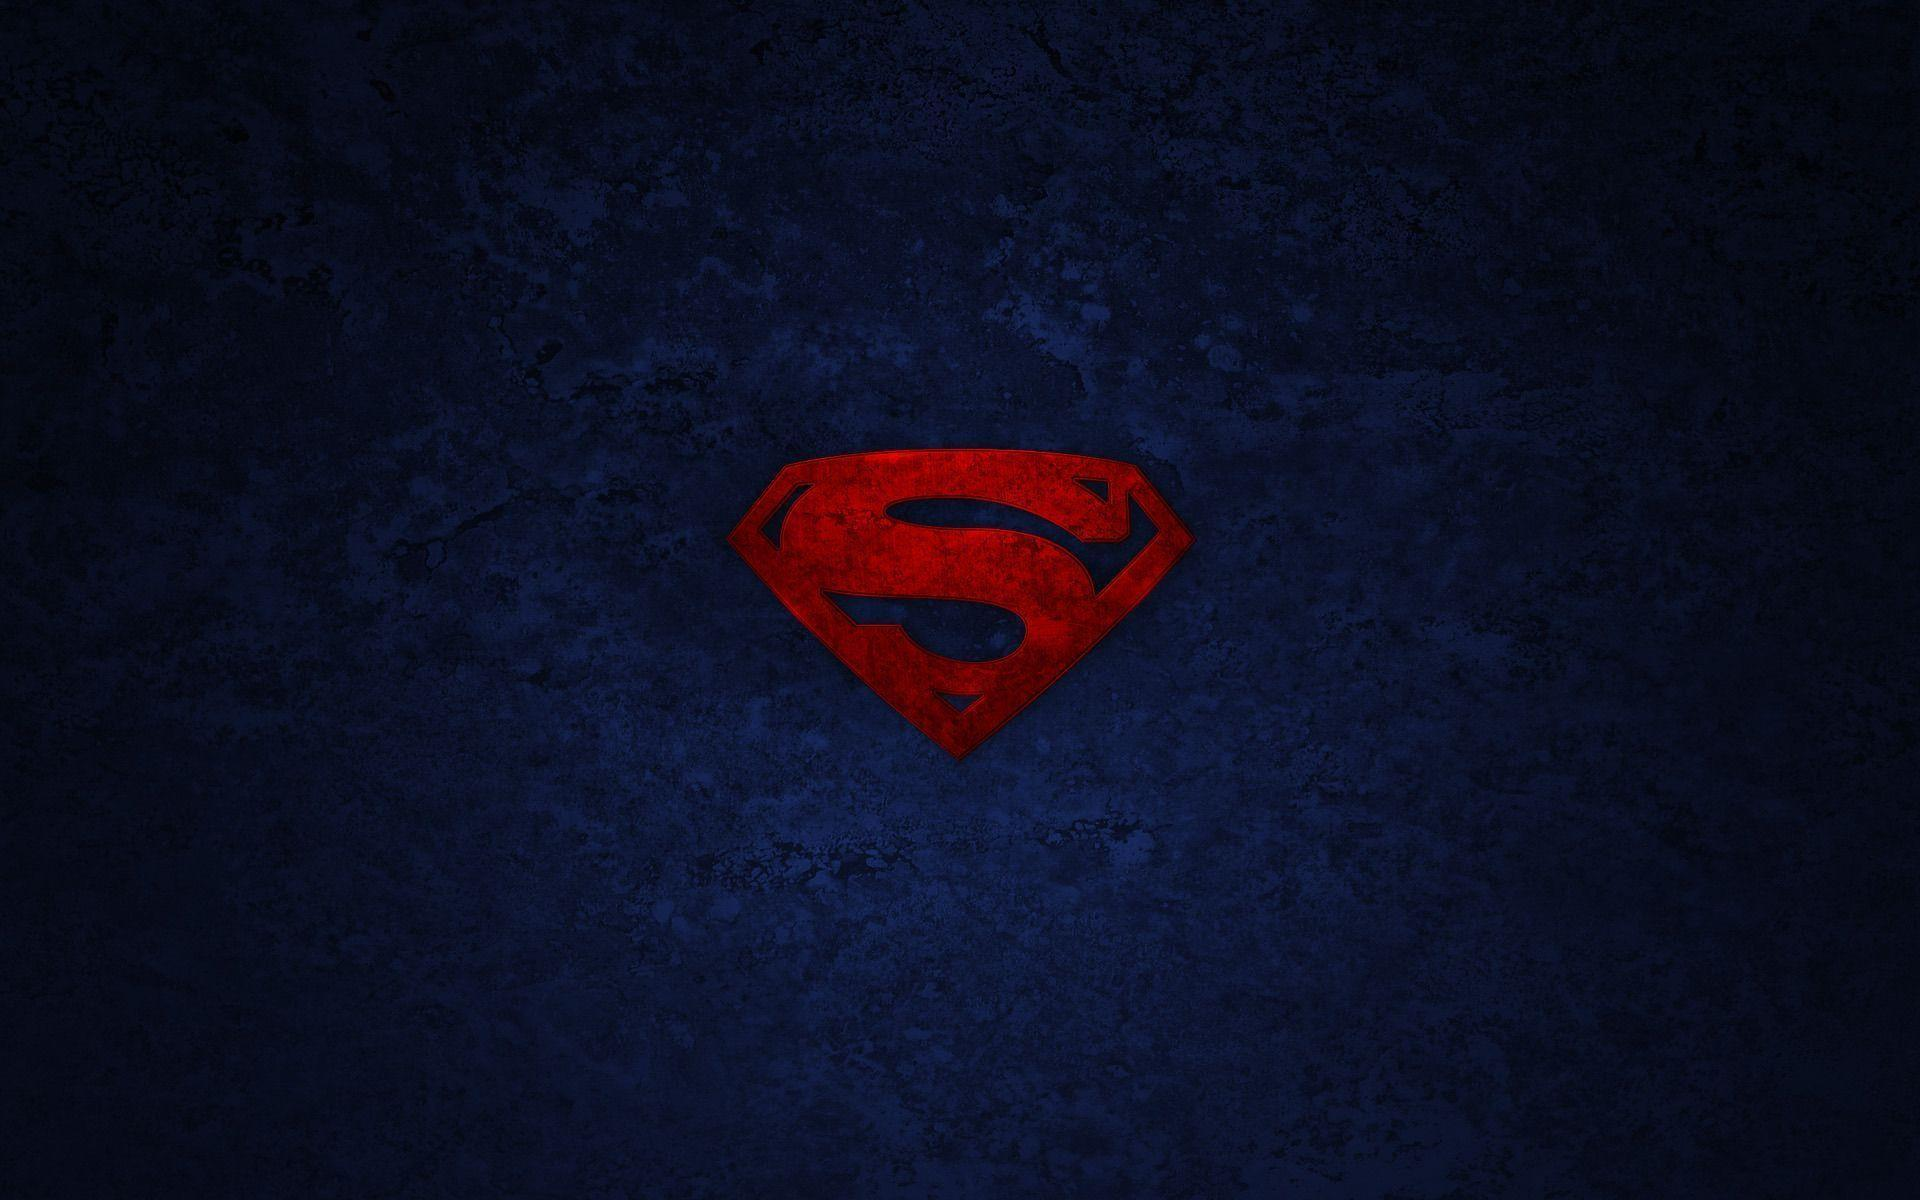 superman logo free wallpaper - photo #17